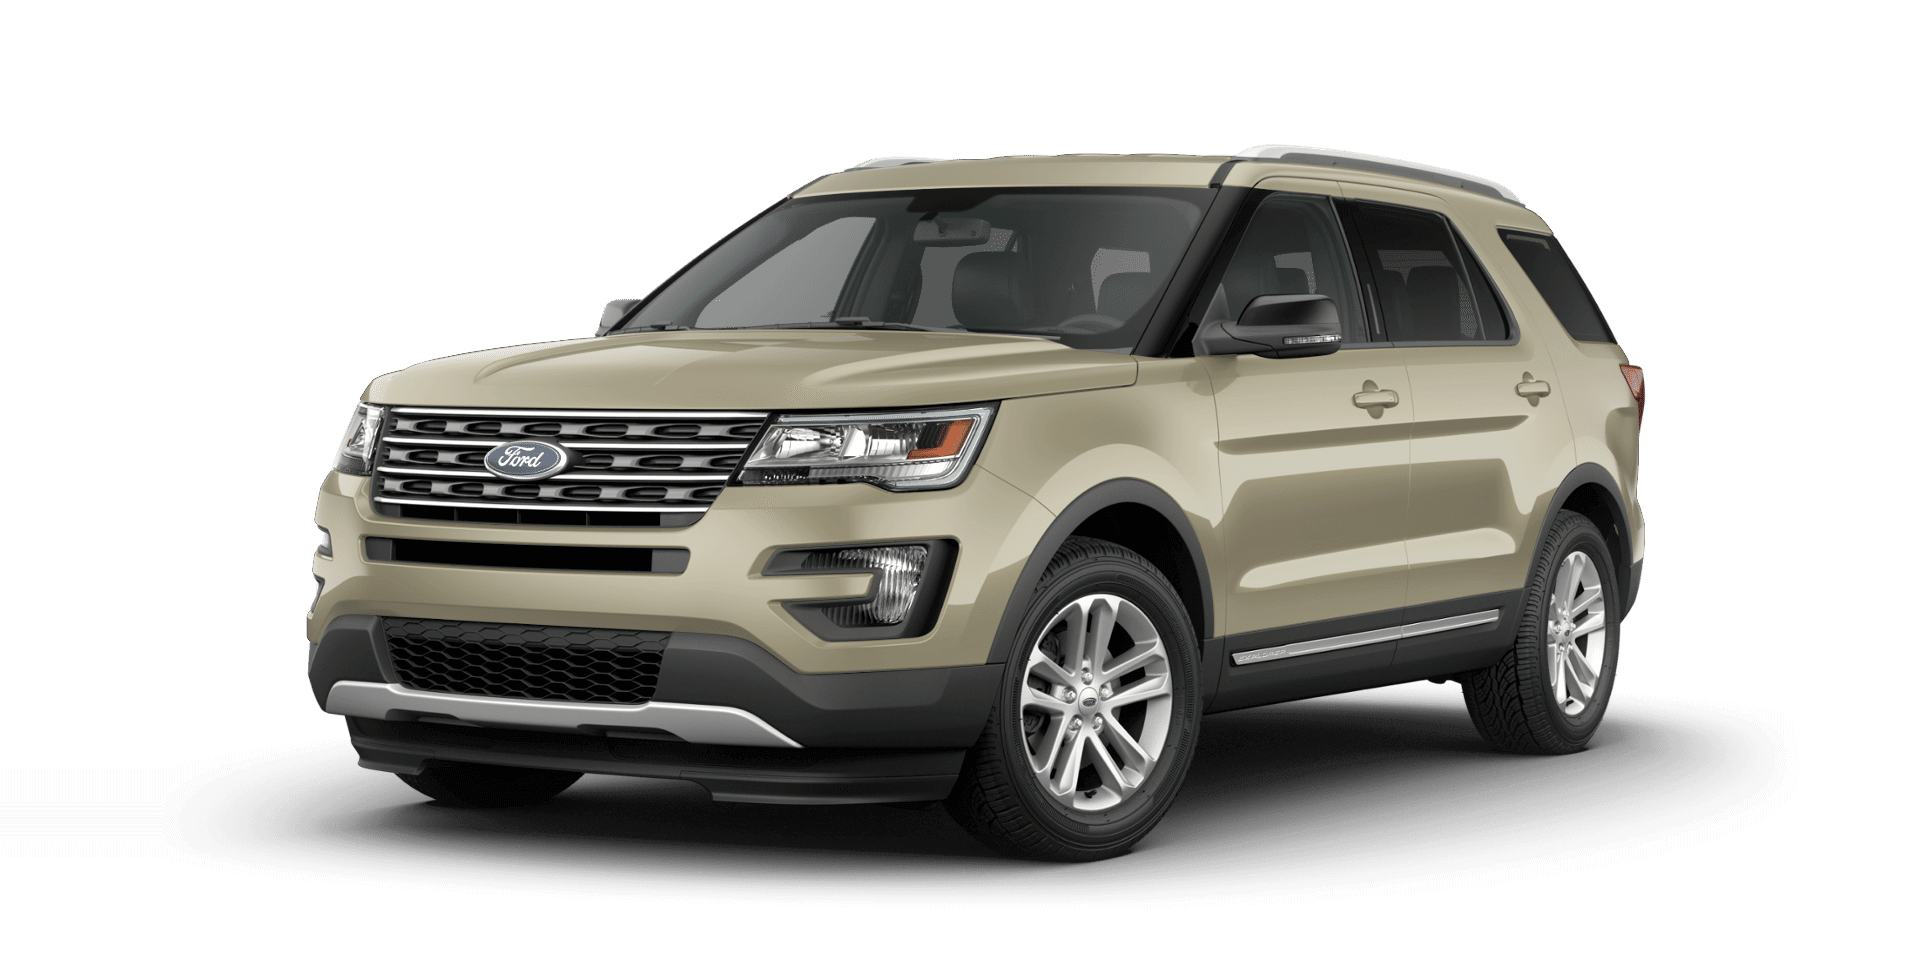 2017 ford explorer info river view ford. Black Bedroom Furniture Sets. Home Design Ideas